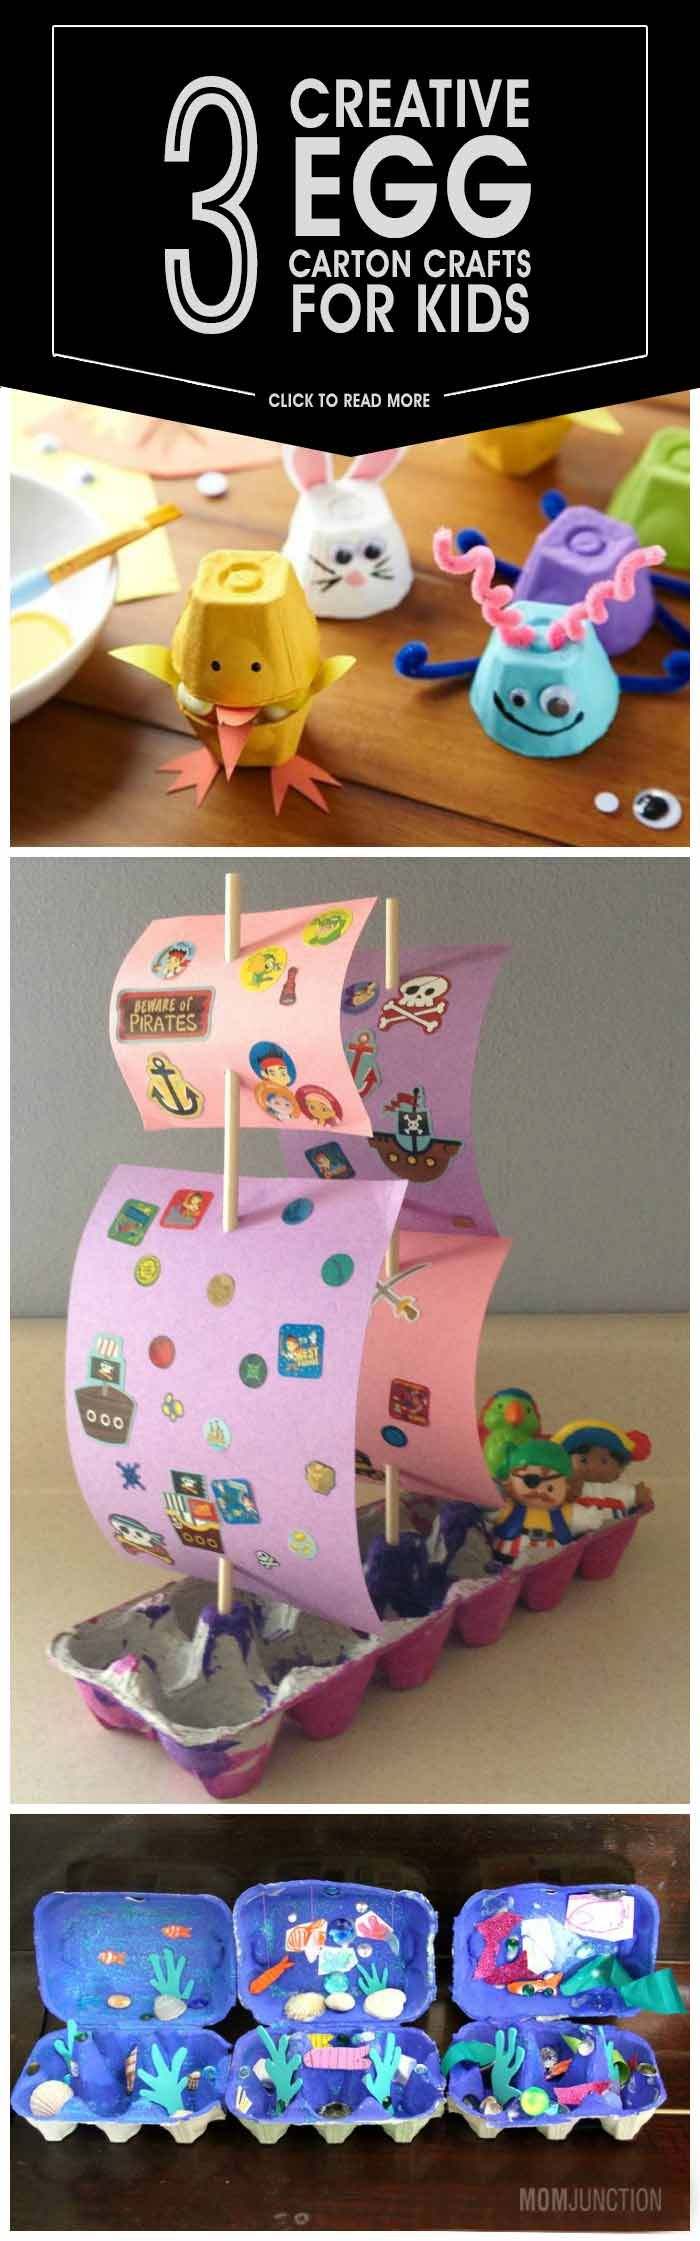 Have you only been using color papers or charts to create beautiful crafts, right? How about using empty egg cartons instead? Check 3 fun egg carton crafts here